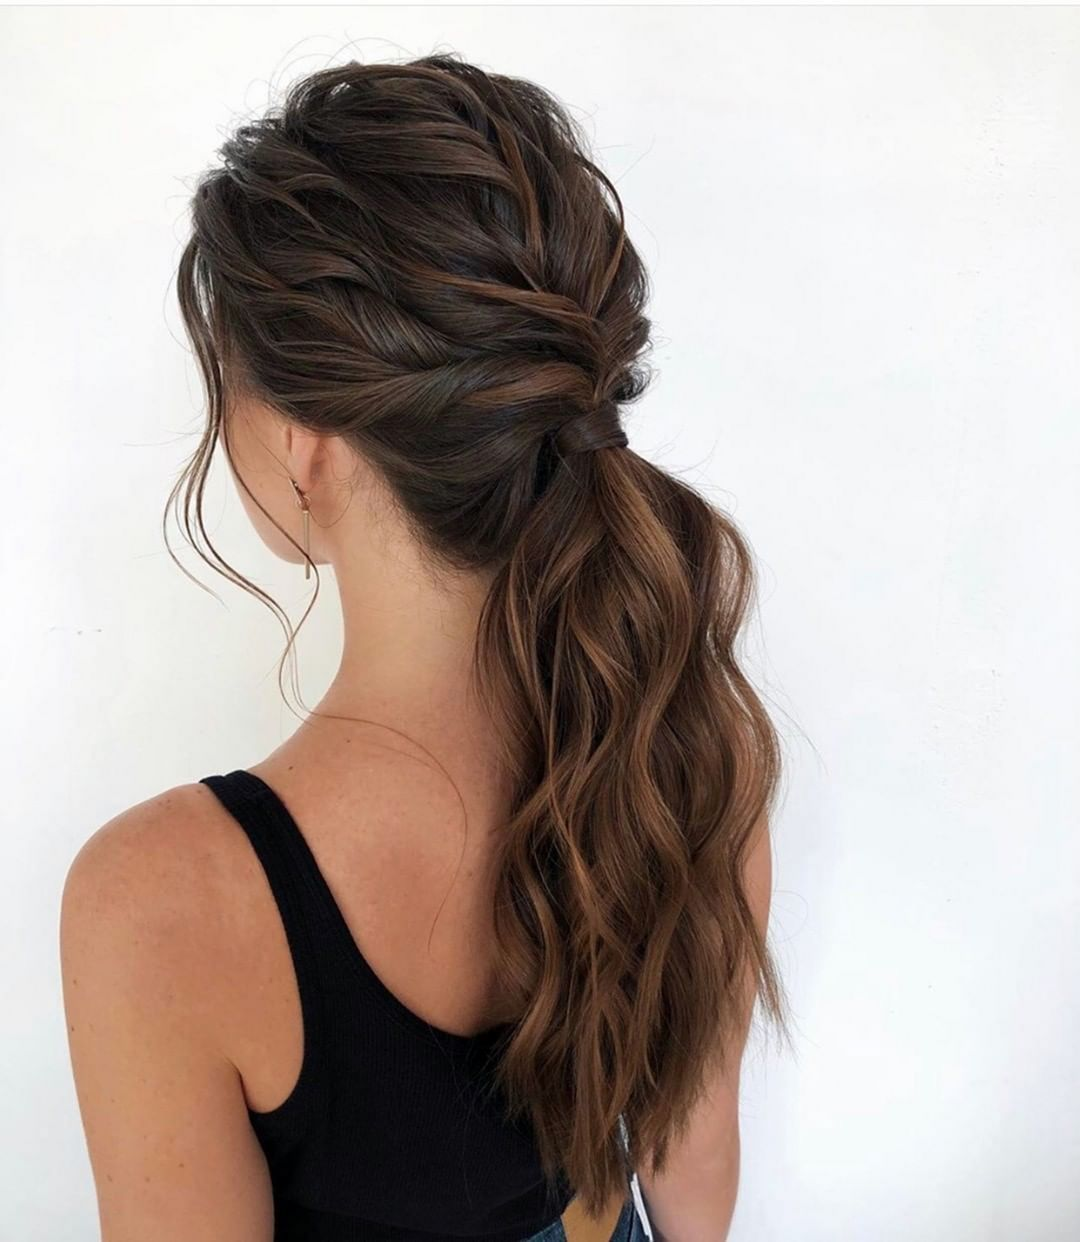 8 Magnificent Prom Hairstyle For Owner Long Hair In Prom Night Party In 2020 Hair Styles Hairstyle Ombre Hair